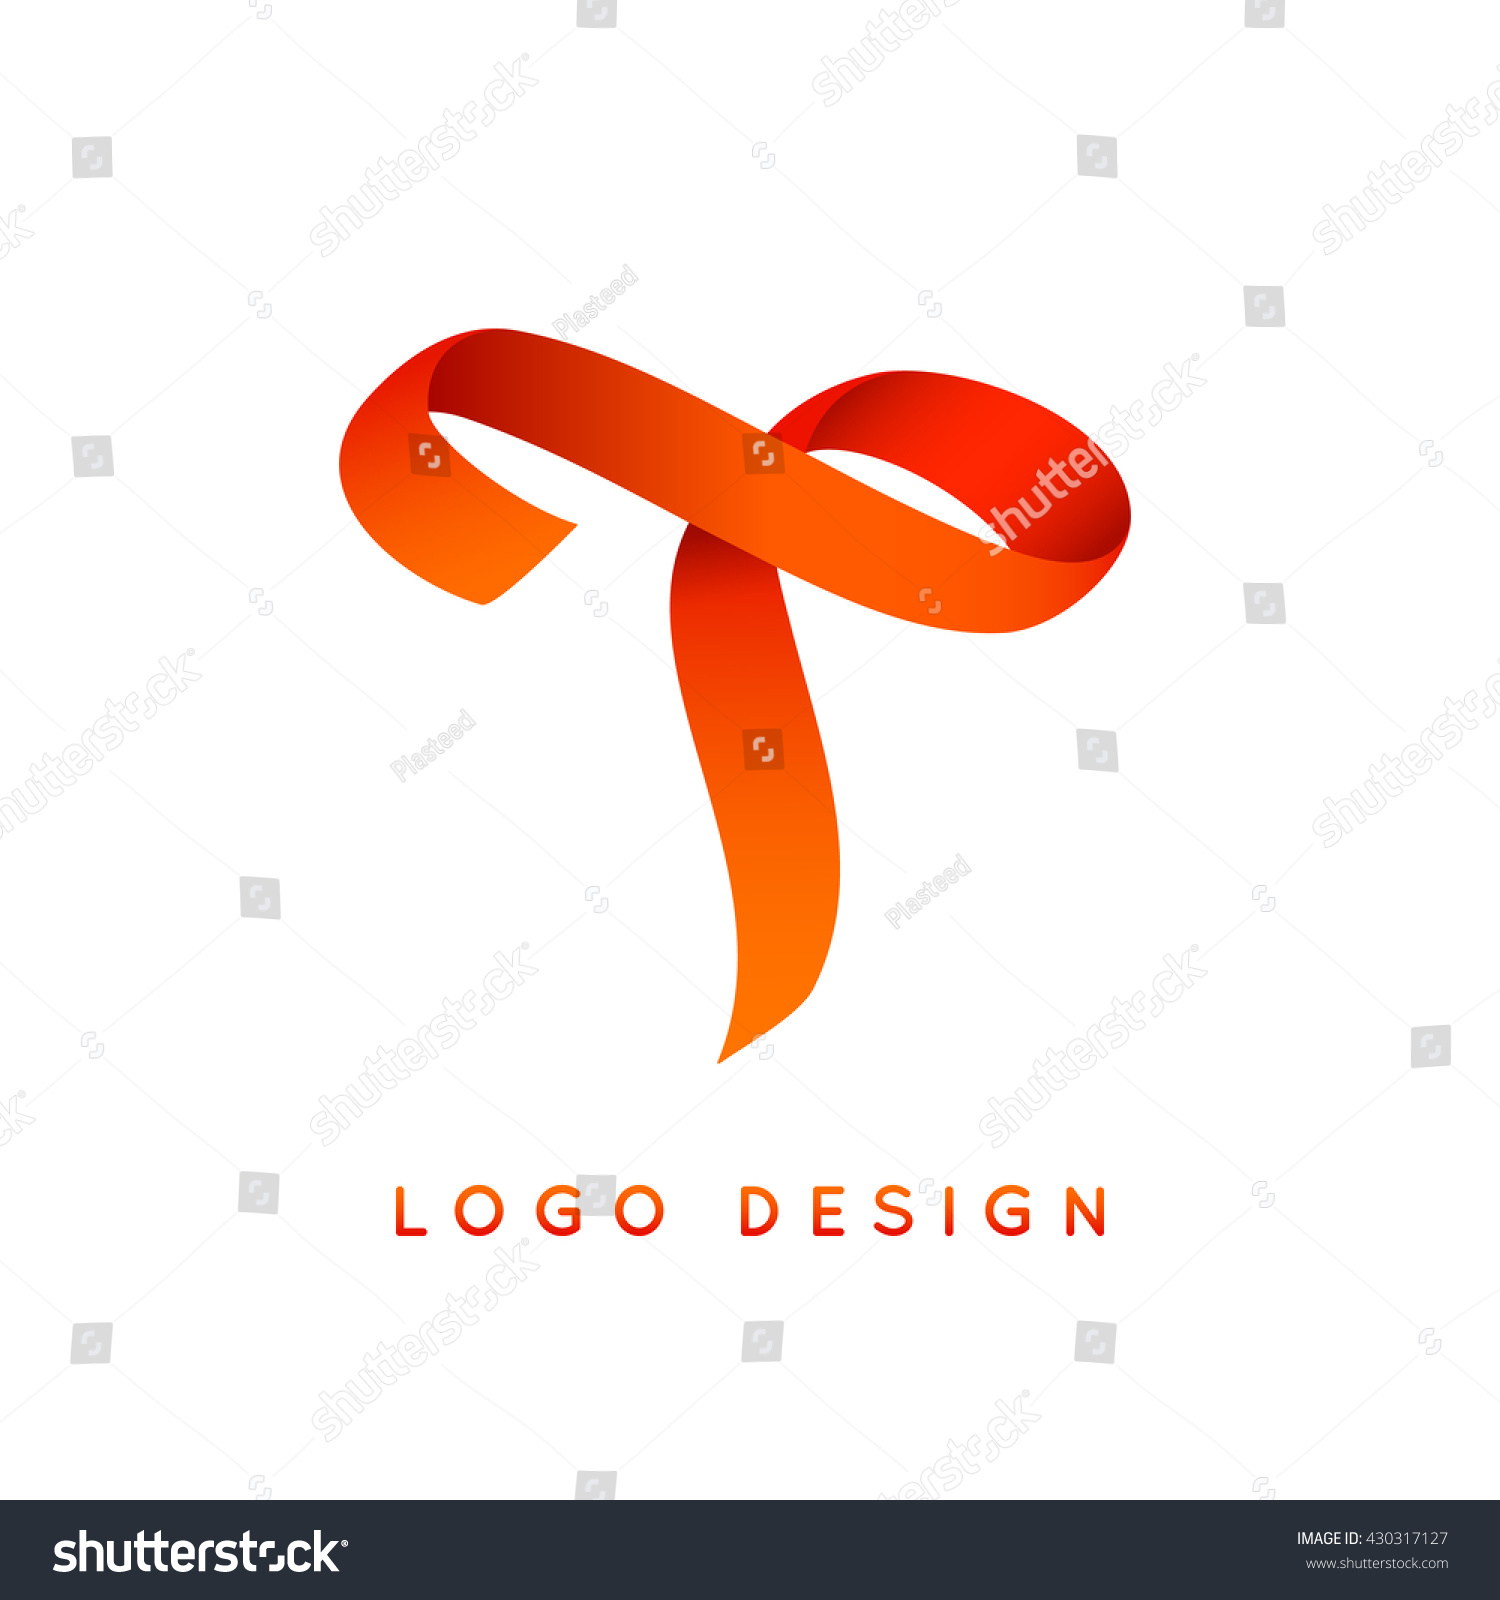 letter t logo design colorful ribbon stock vector